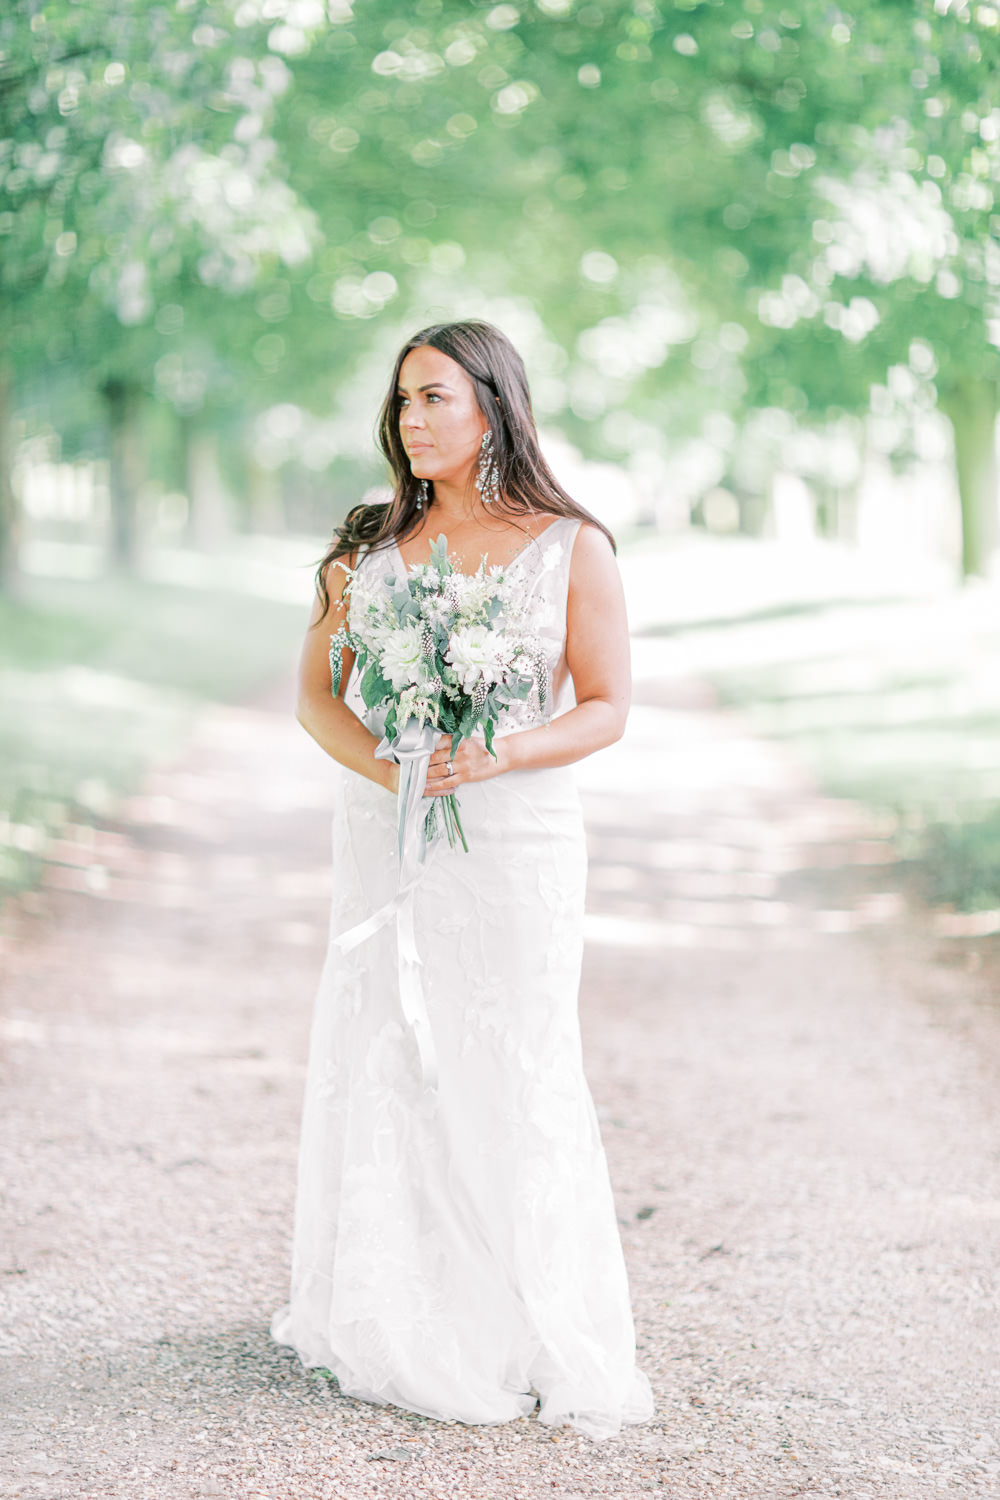 Dress Gown Bride Bridal Lace Family Elopement Ideas Sophie May Photo